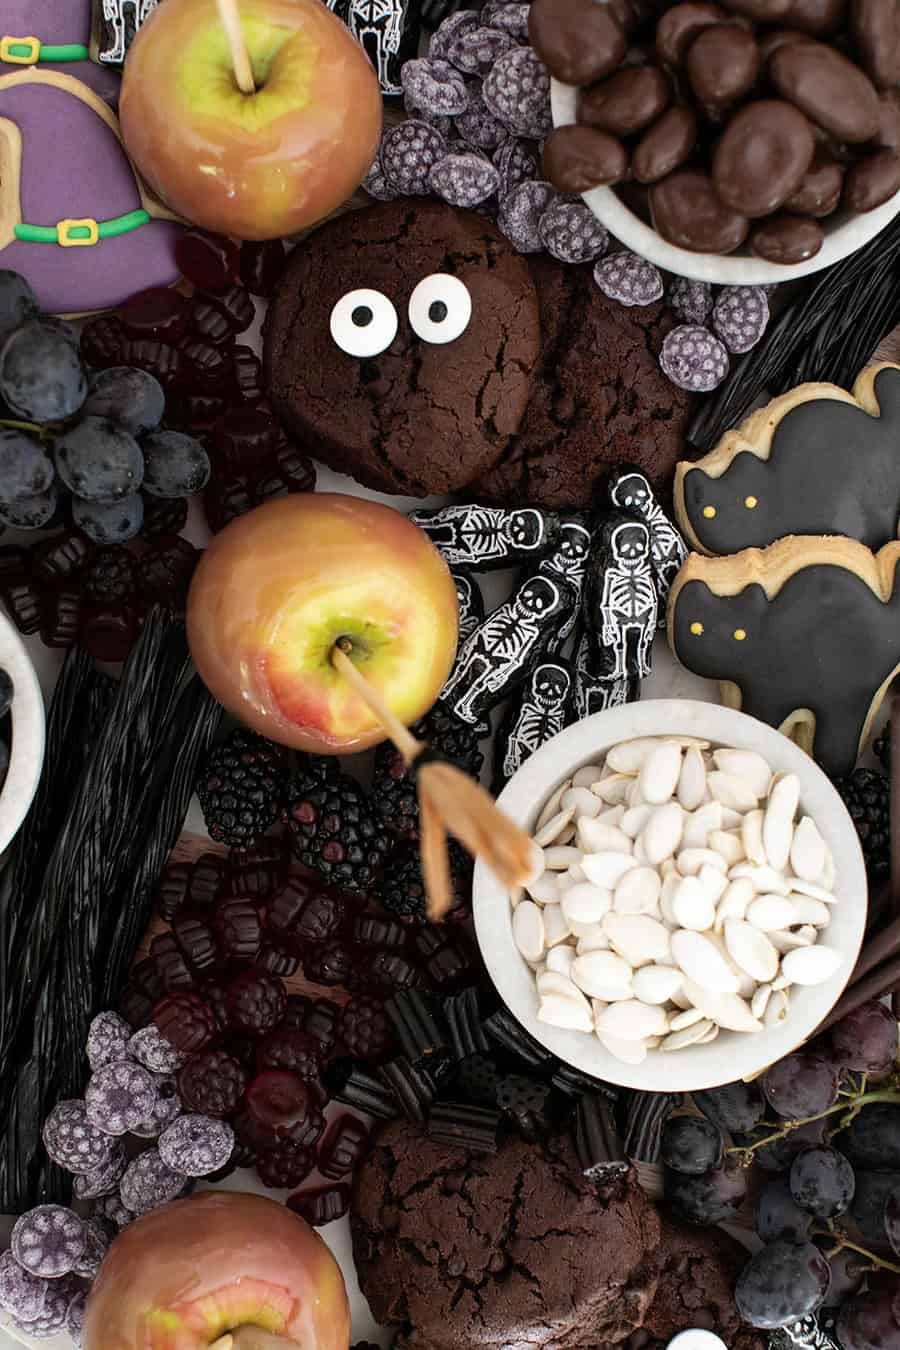 Halloween desserts on a platter. Cat cookies, chocolate cookies, sprinkles, chocolates